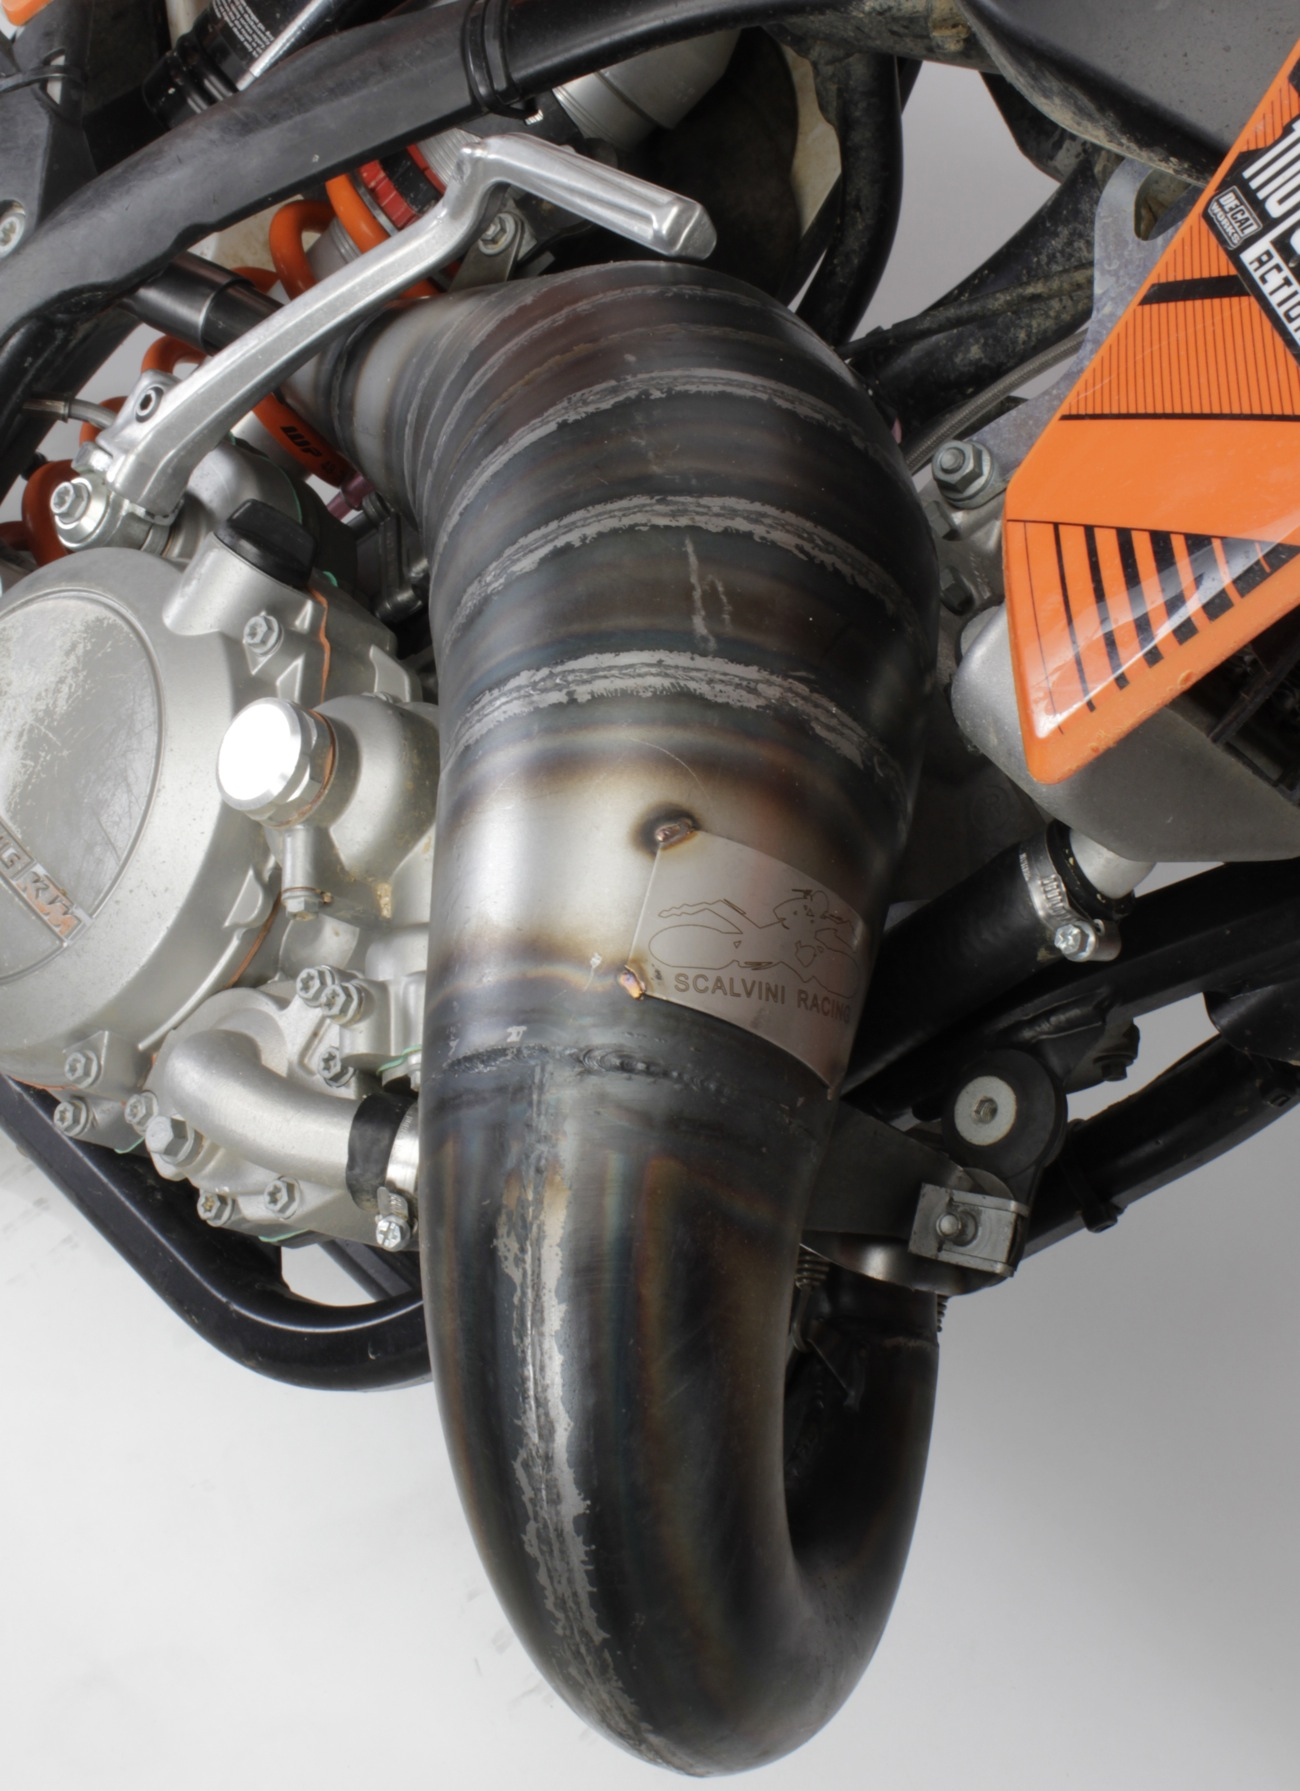 MXA TEAM TESTED: SCALVINI KTM 125SX CONE PIPE/SILENCER